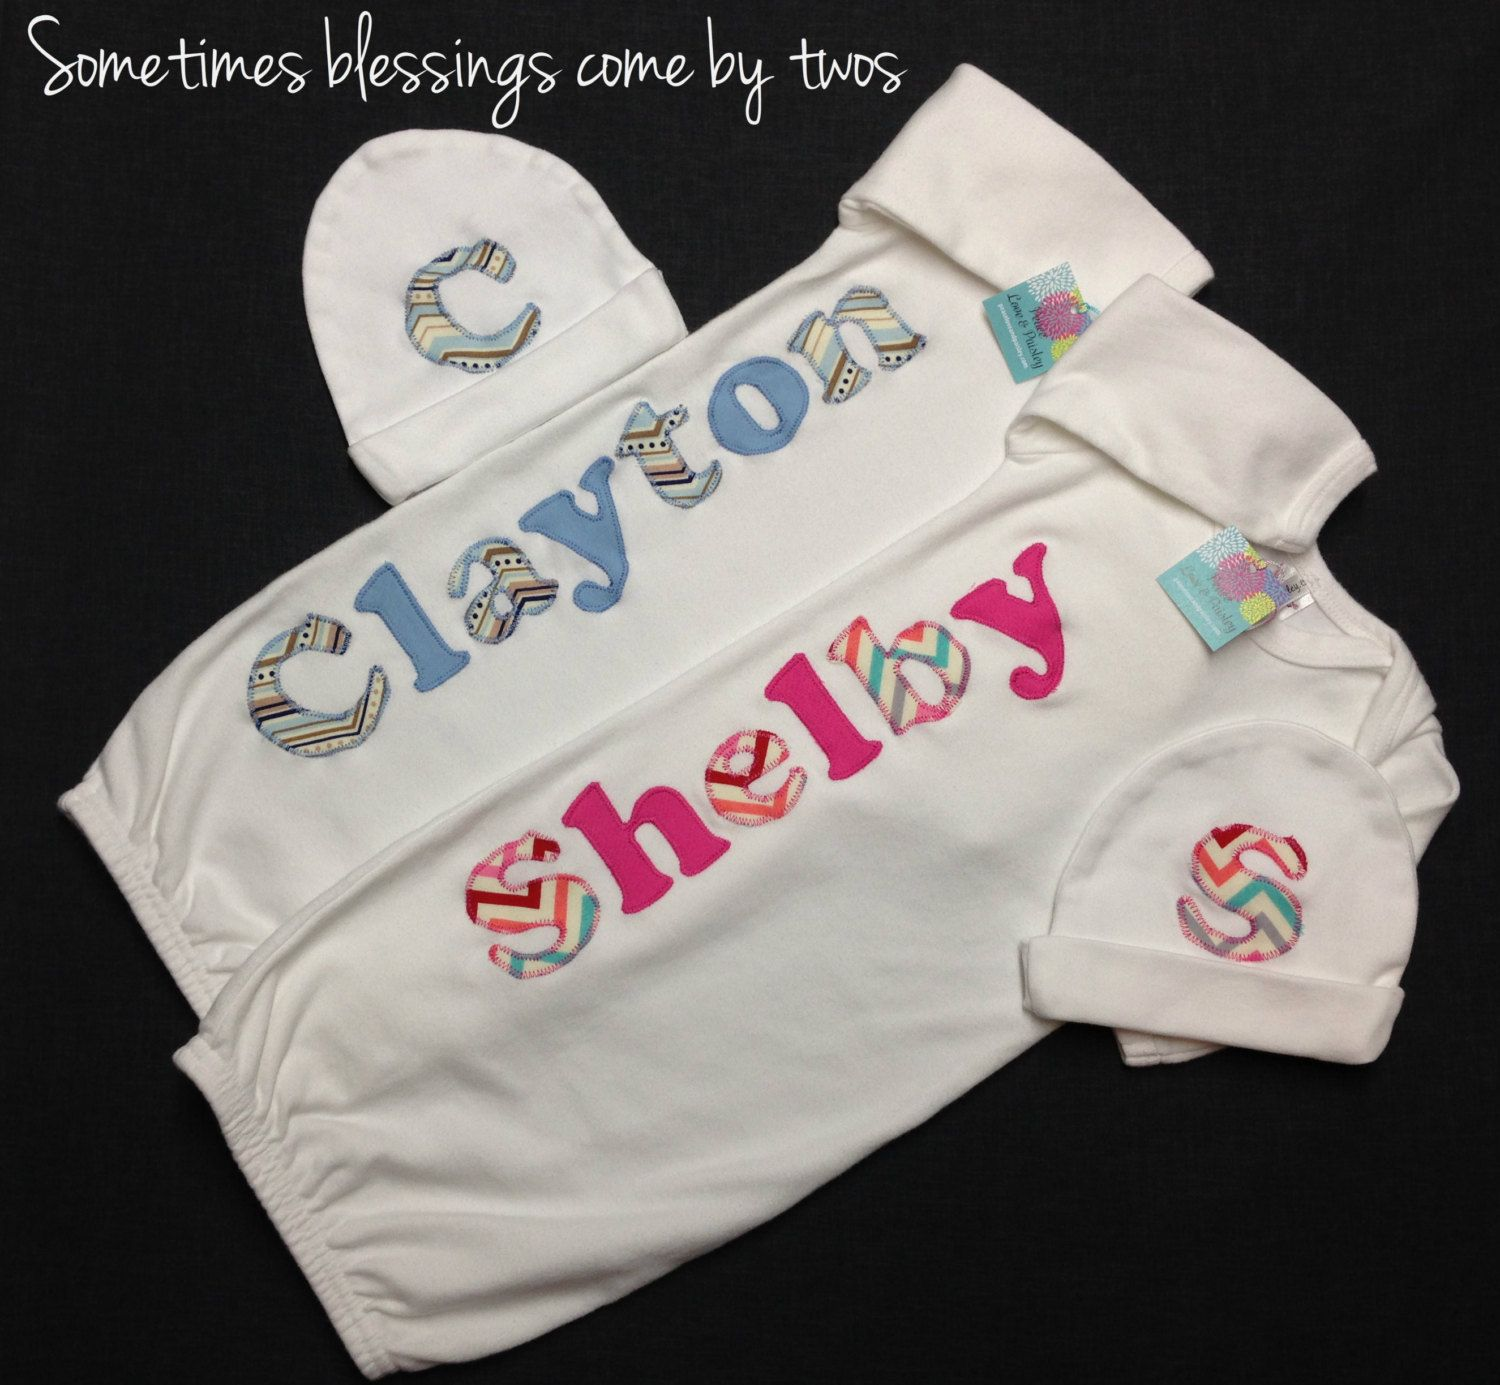 Boy girl twins personalized baby gown newborn gown infant gown boy girl twins personalized baby gown newborn gown infant gown twin going negle Choice Image